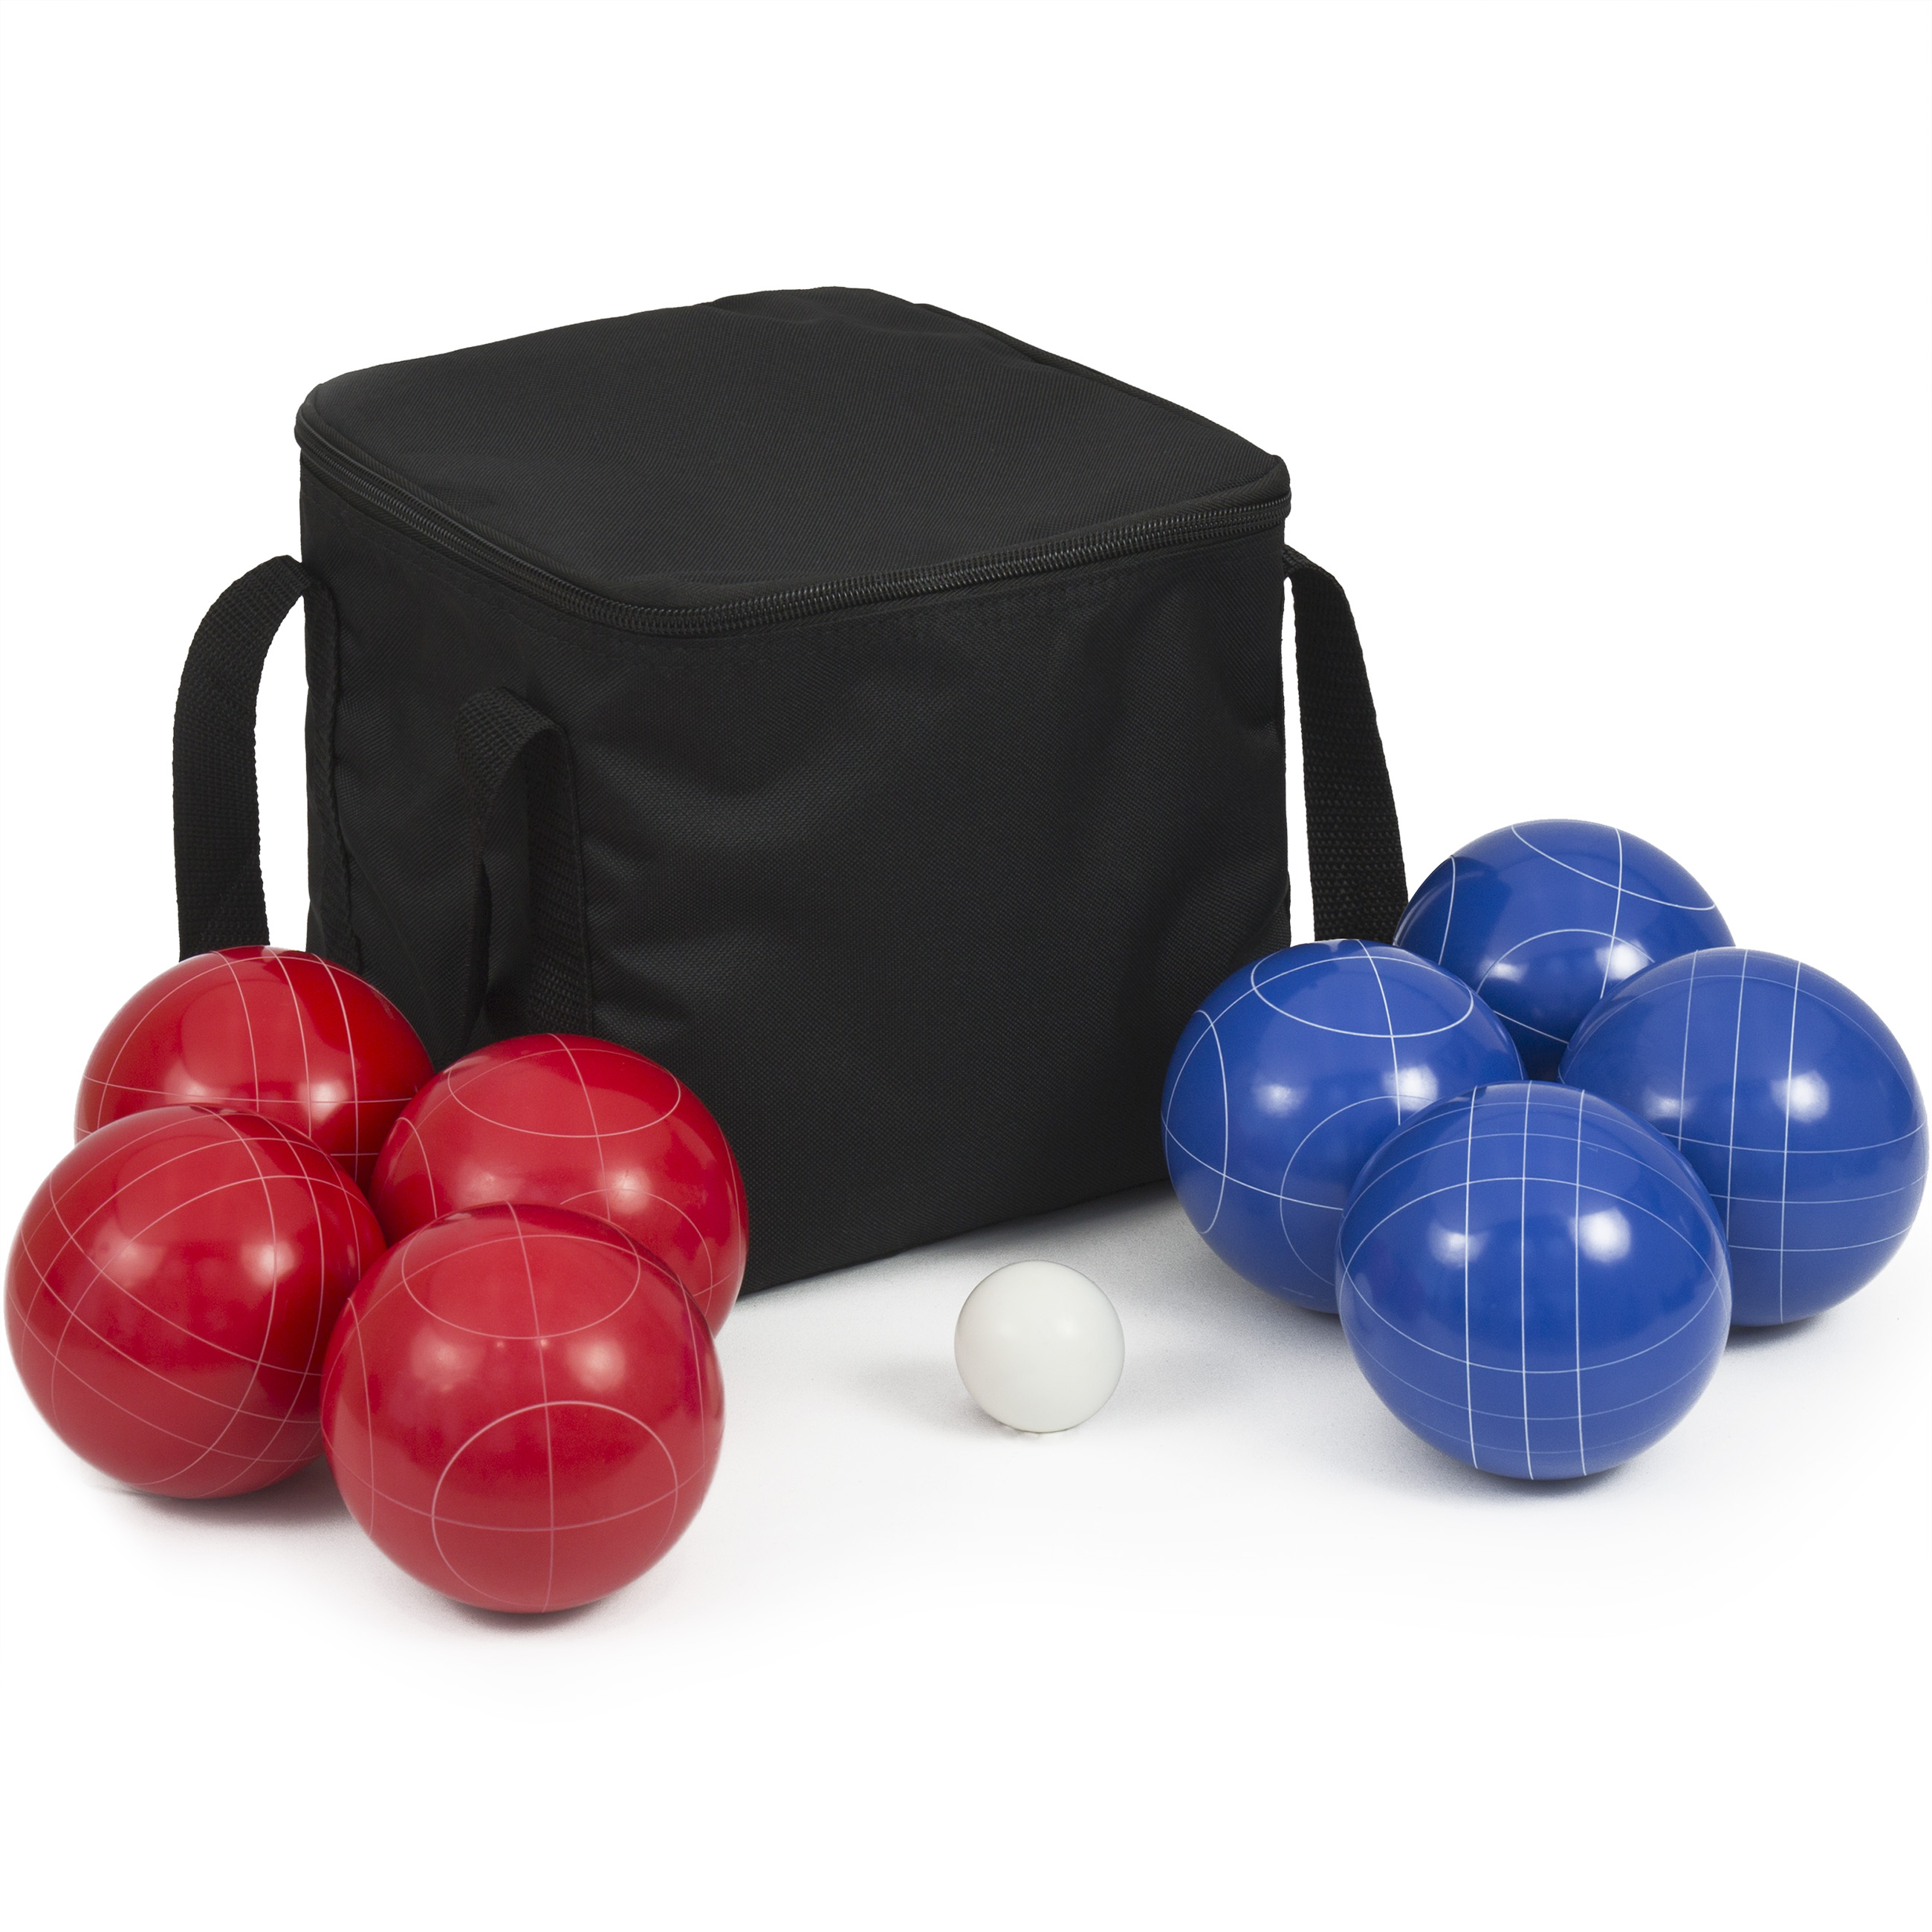 Best Choice Products Portable Lawn Games 90mm Resin 9 Balls Ultimate Bocce Balls Set W/ Carrying Case